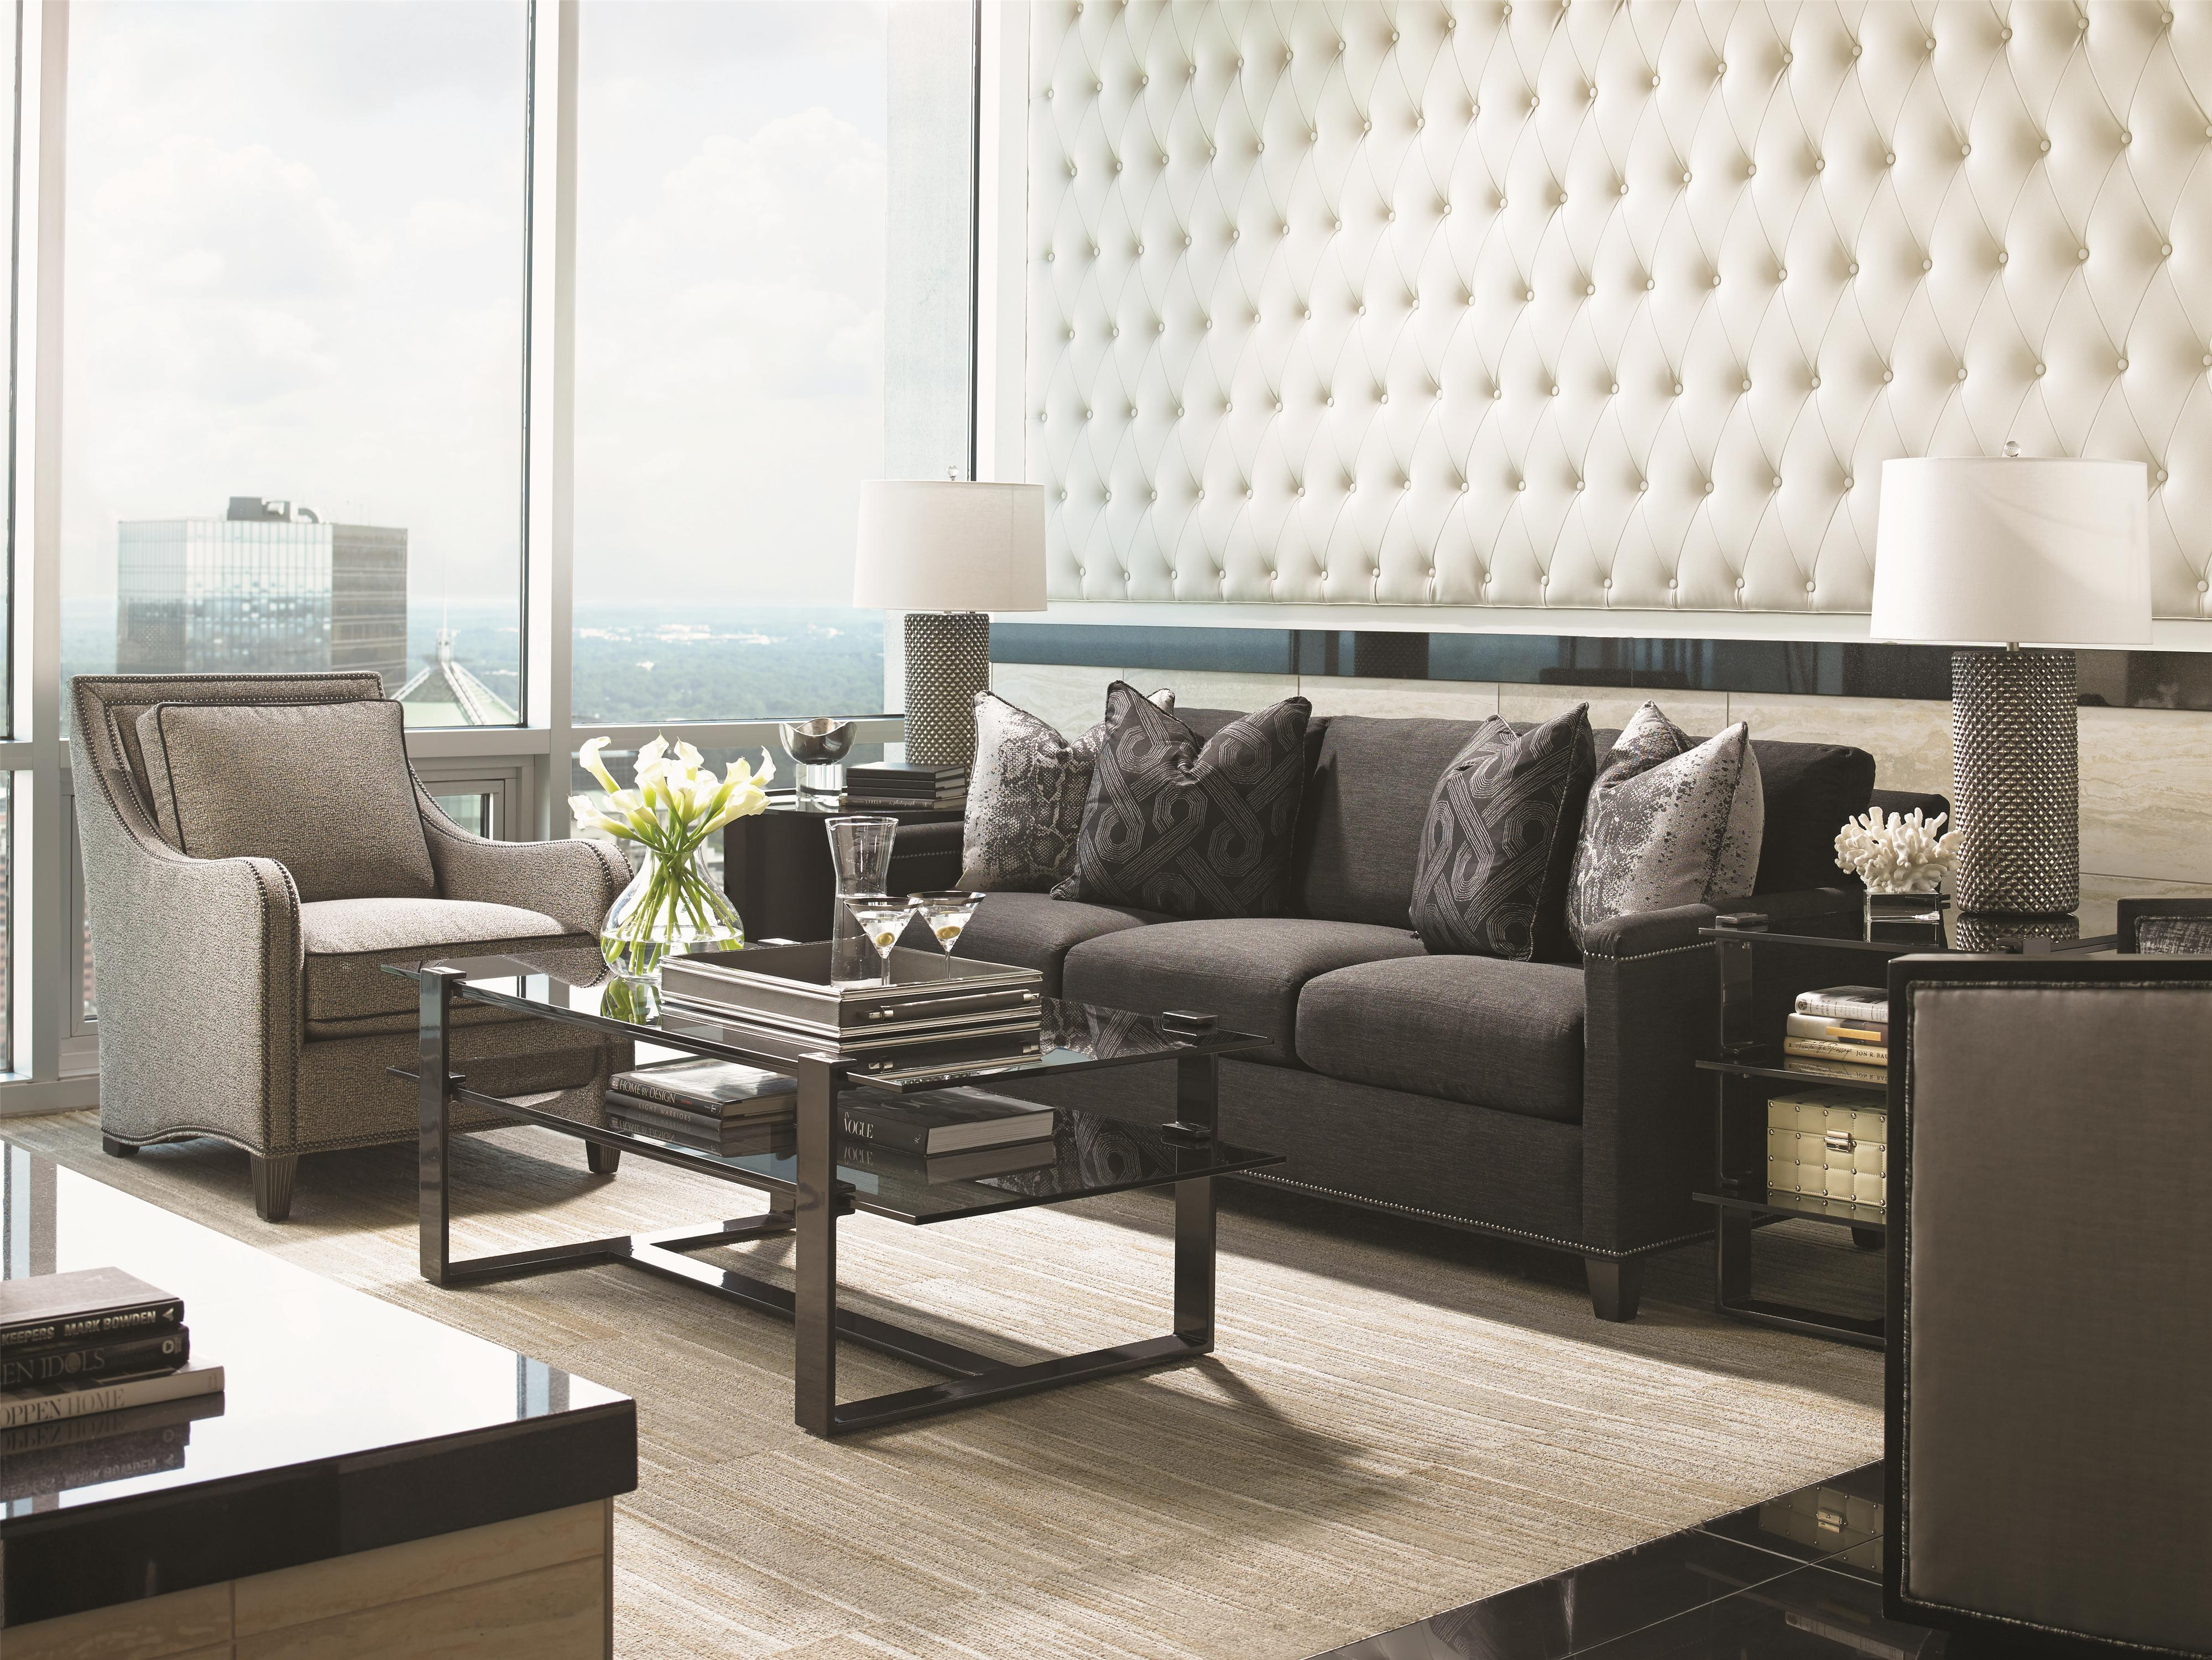 Carrera Stationary Living Room Group by Lexington at Baer's Furniture